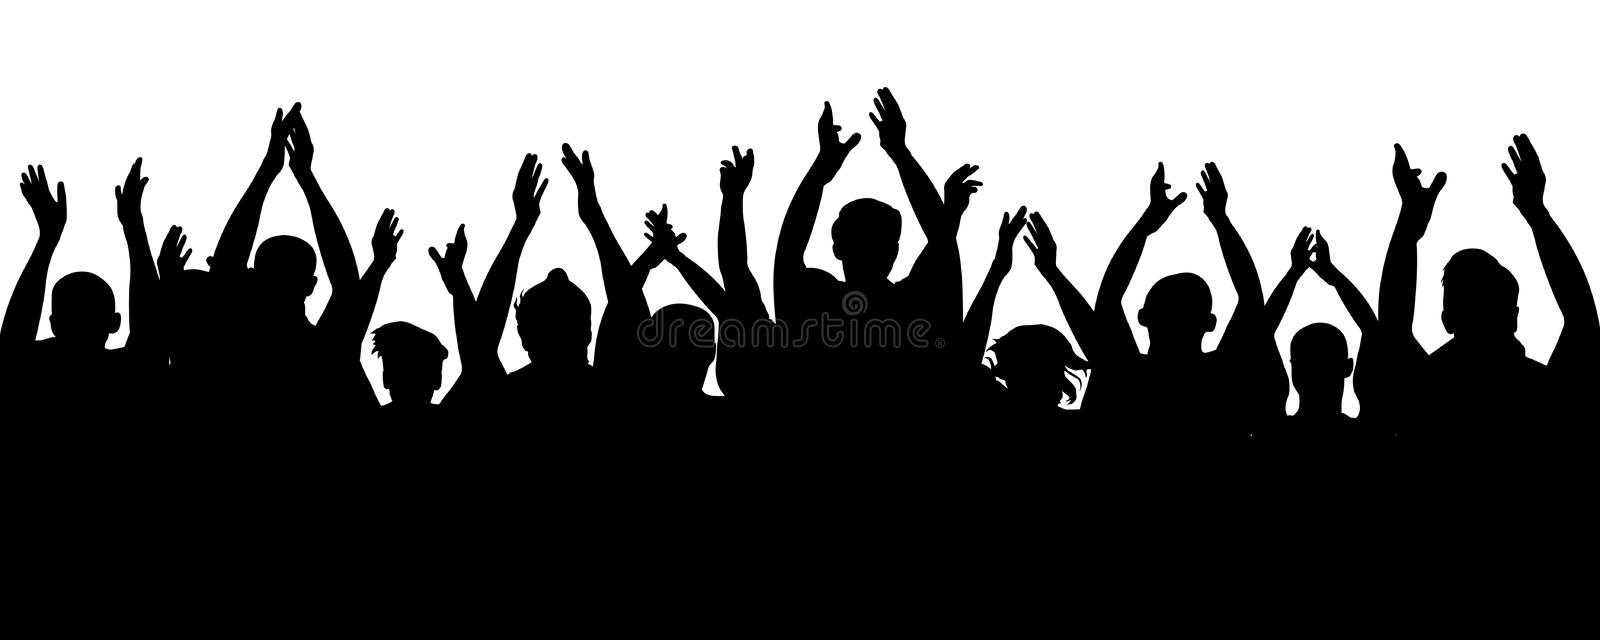 Applause audience. Crowd people cheering, cheer hands up. Cheerful mob fans applauding, clapping. Party, concert, sport. Vector silhouette vector illustration